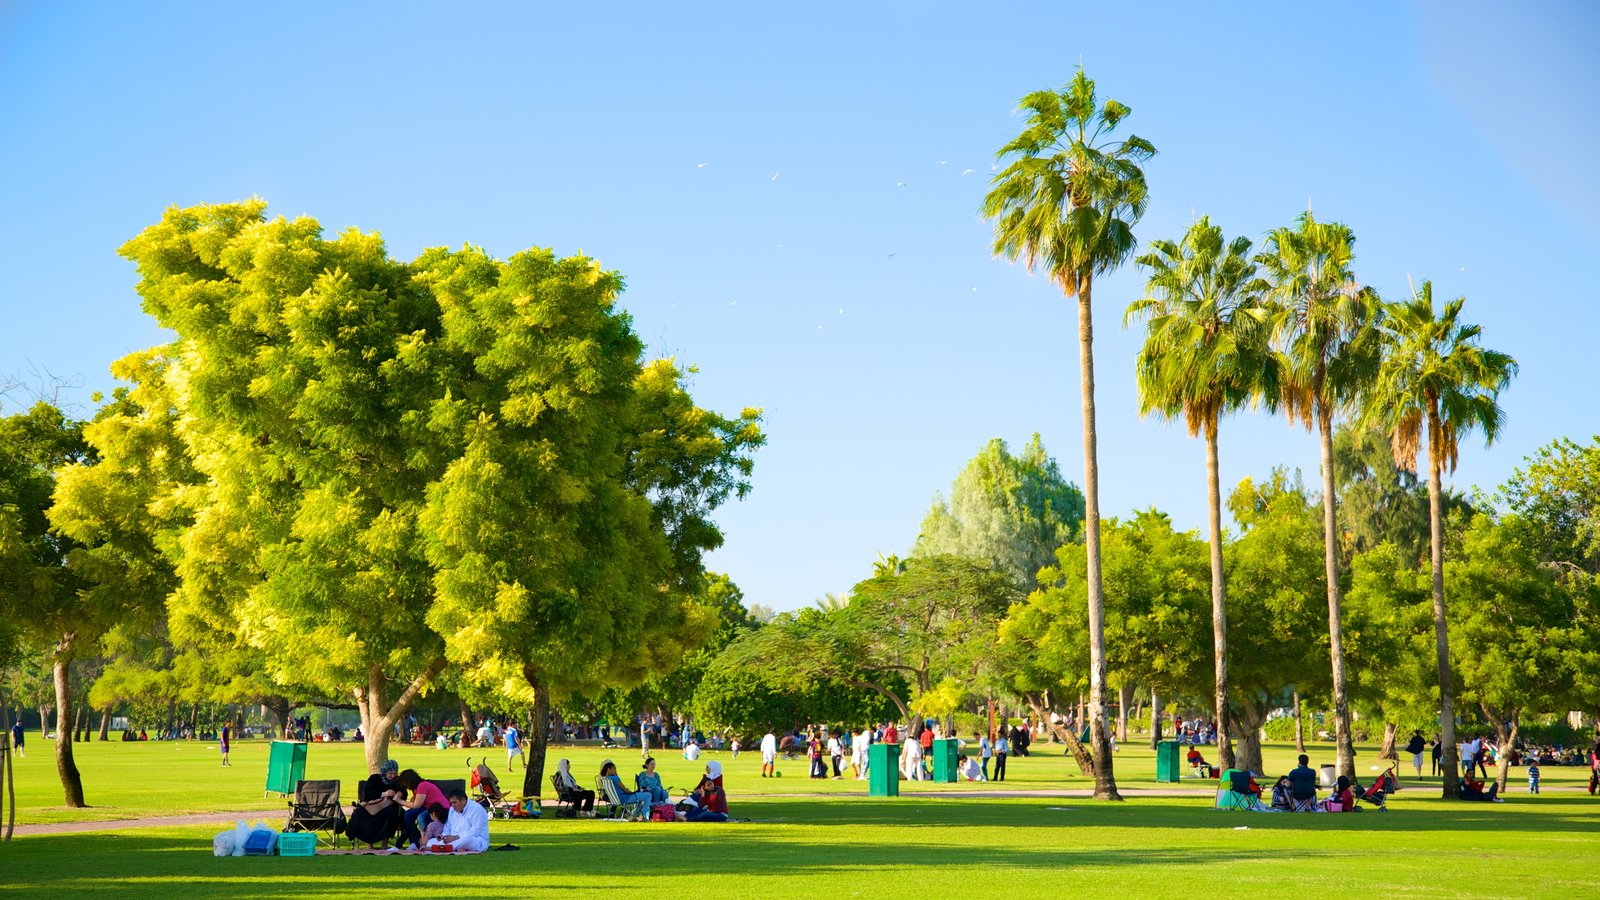 Safa Park which includes a garden and picnicing as well as a large group of people